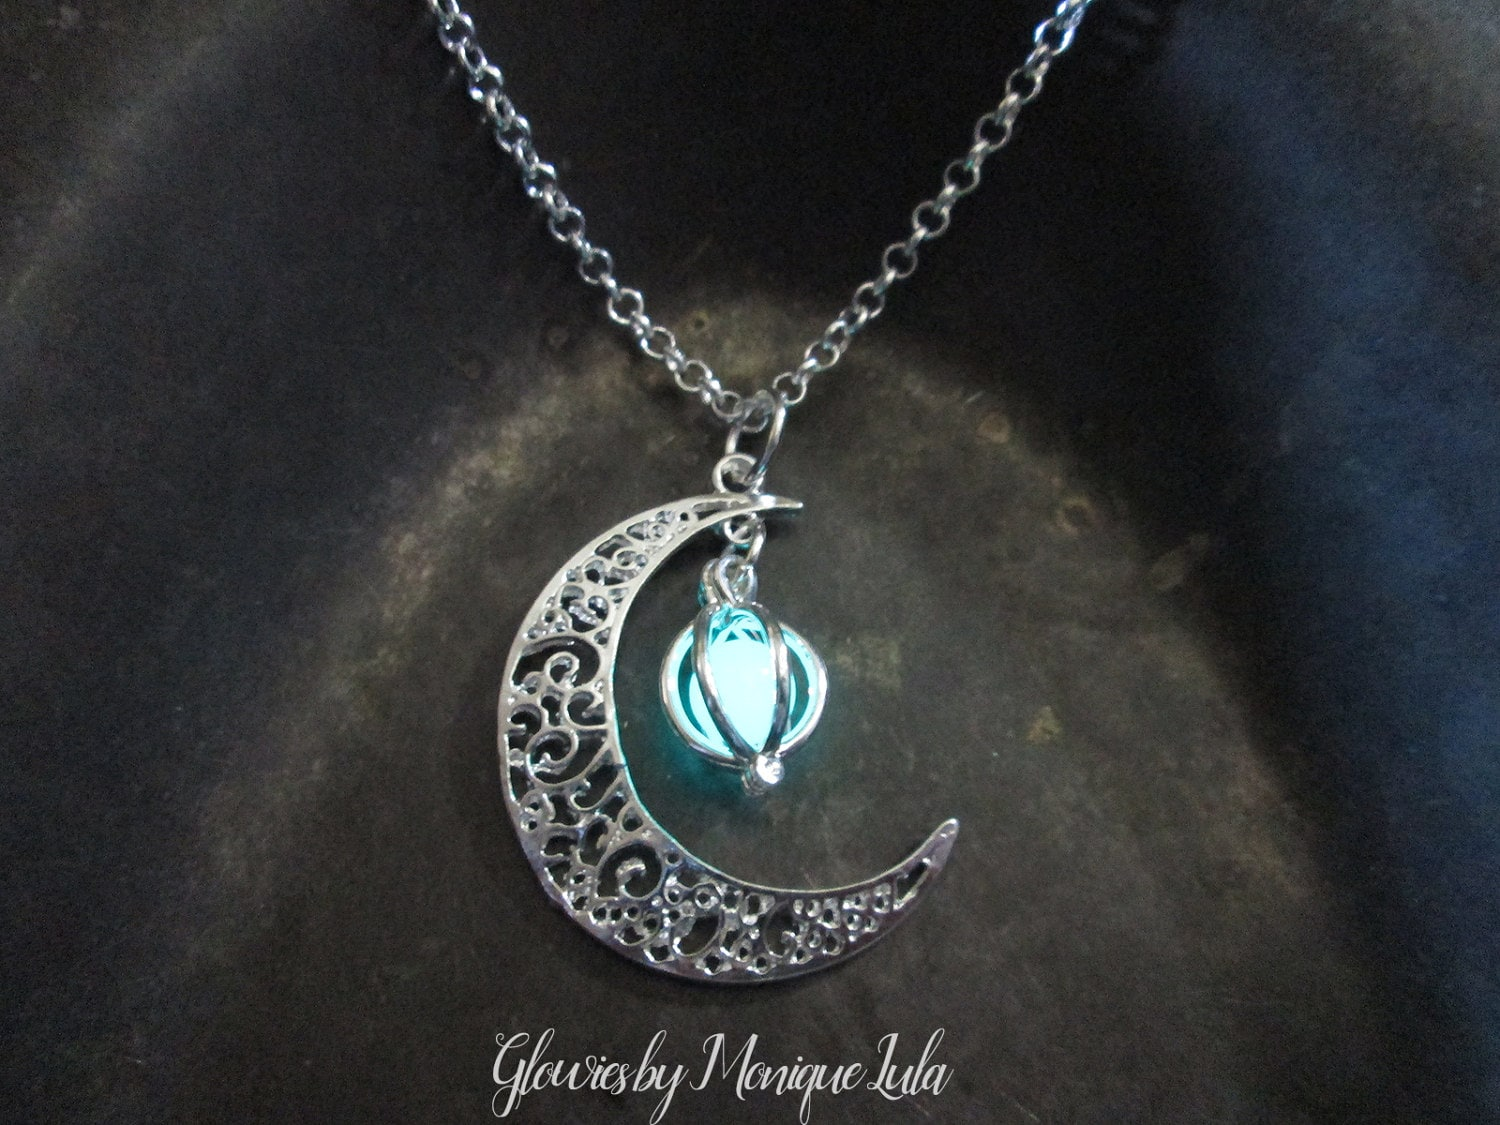 glowing necklace magical pin heart pinterest awesomeness